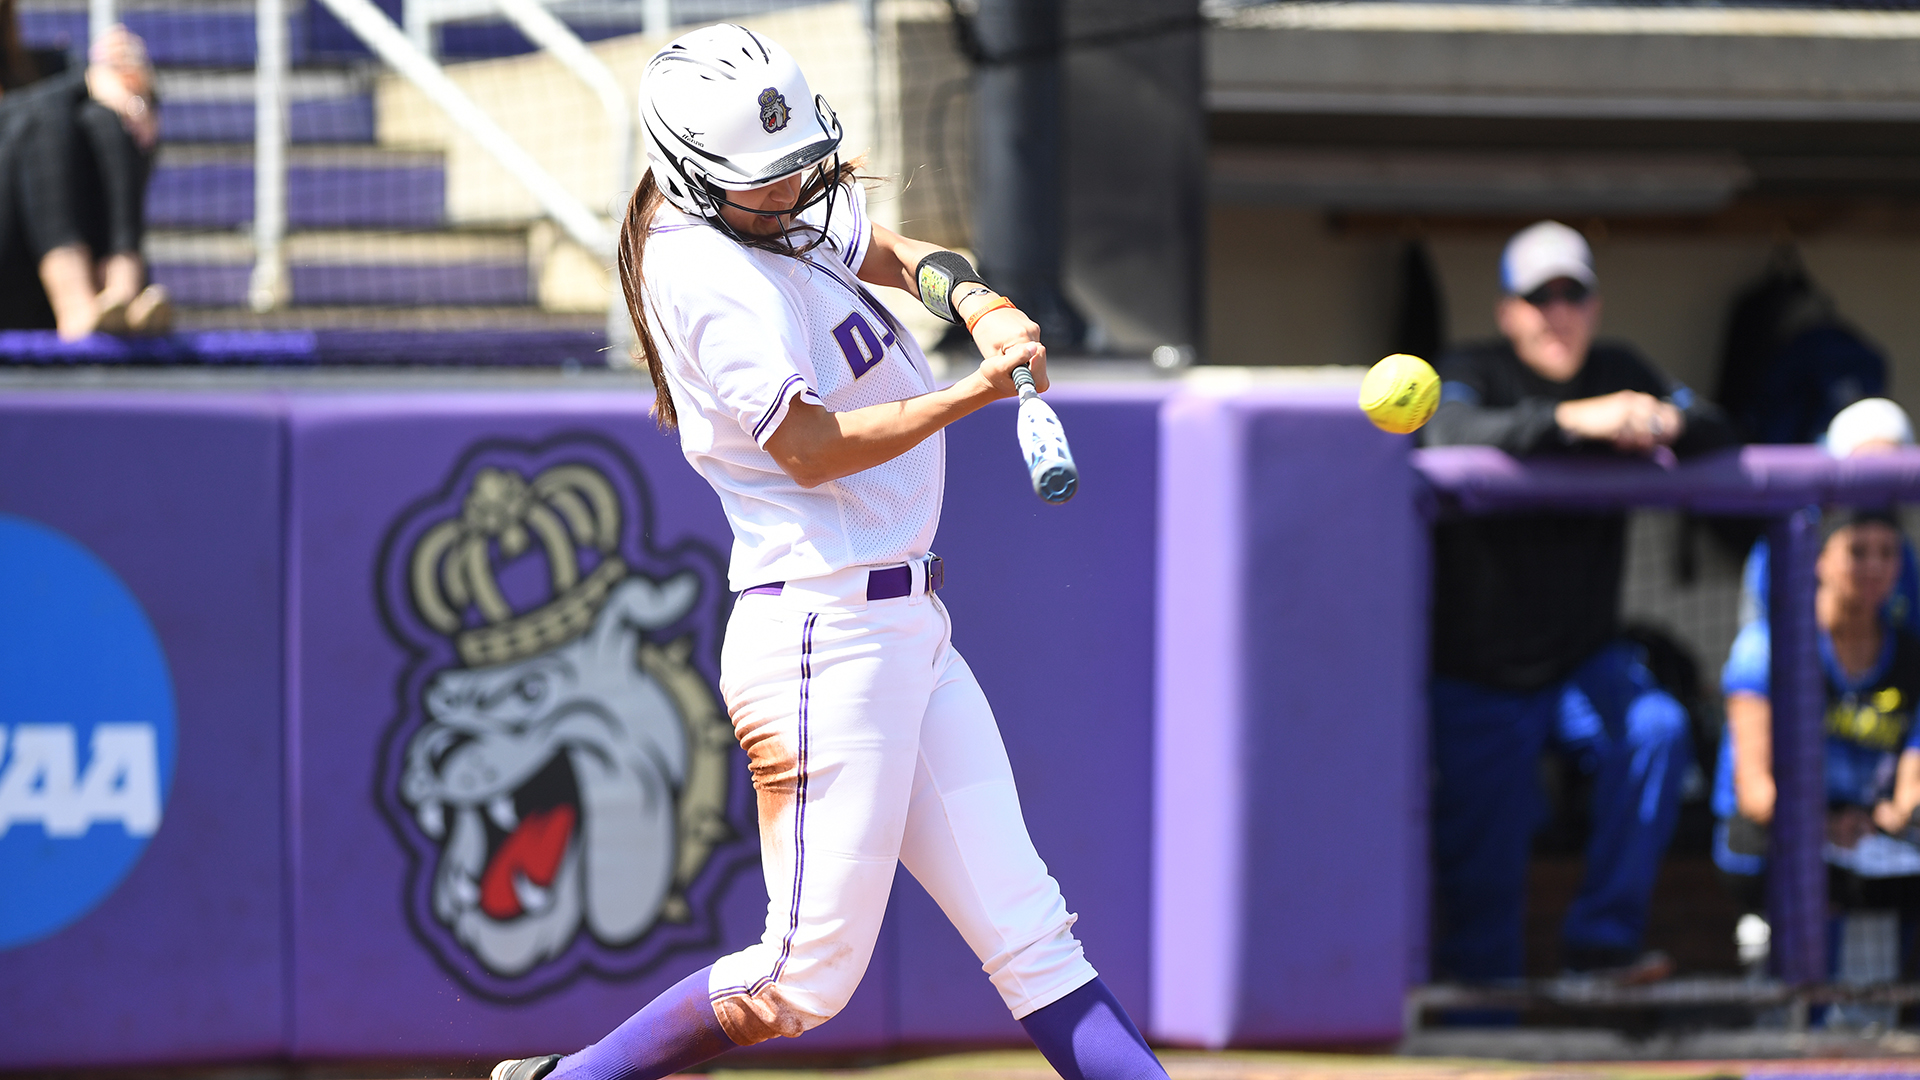 Softball: Potent Offense Leads Dukes to Series Sweep Over Elon